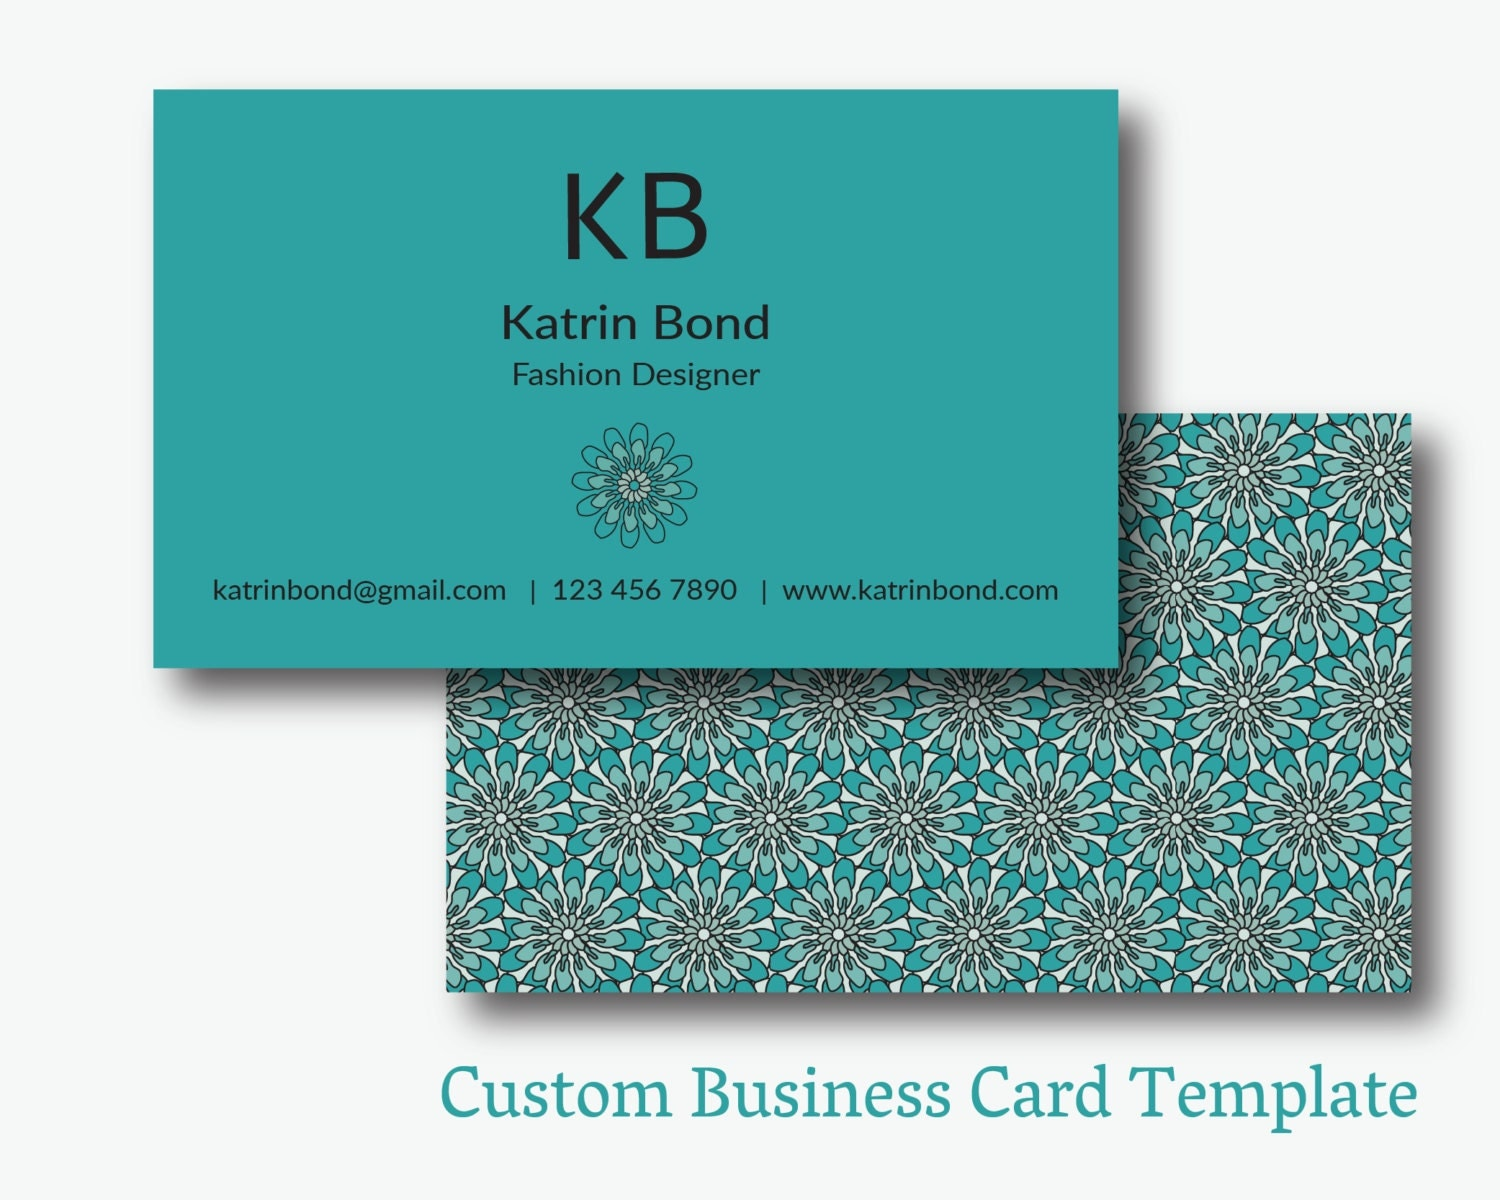 Business card template photoshop cs6 28 images for Business card template photoshop cs6